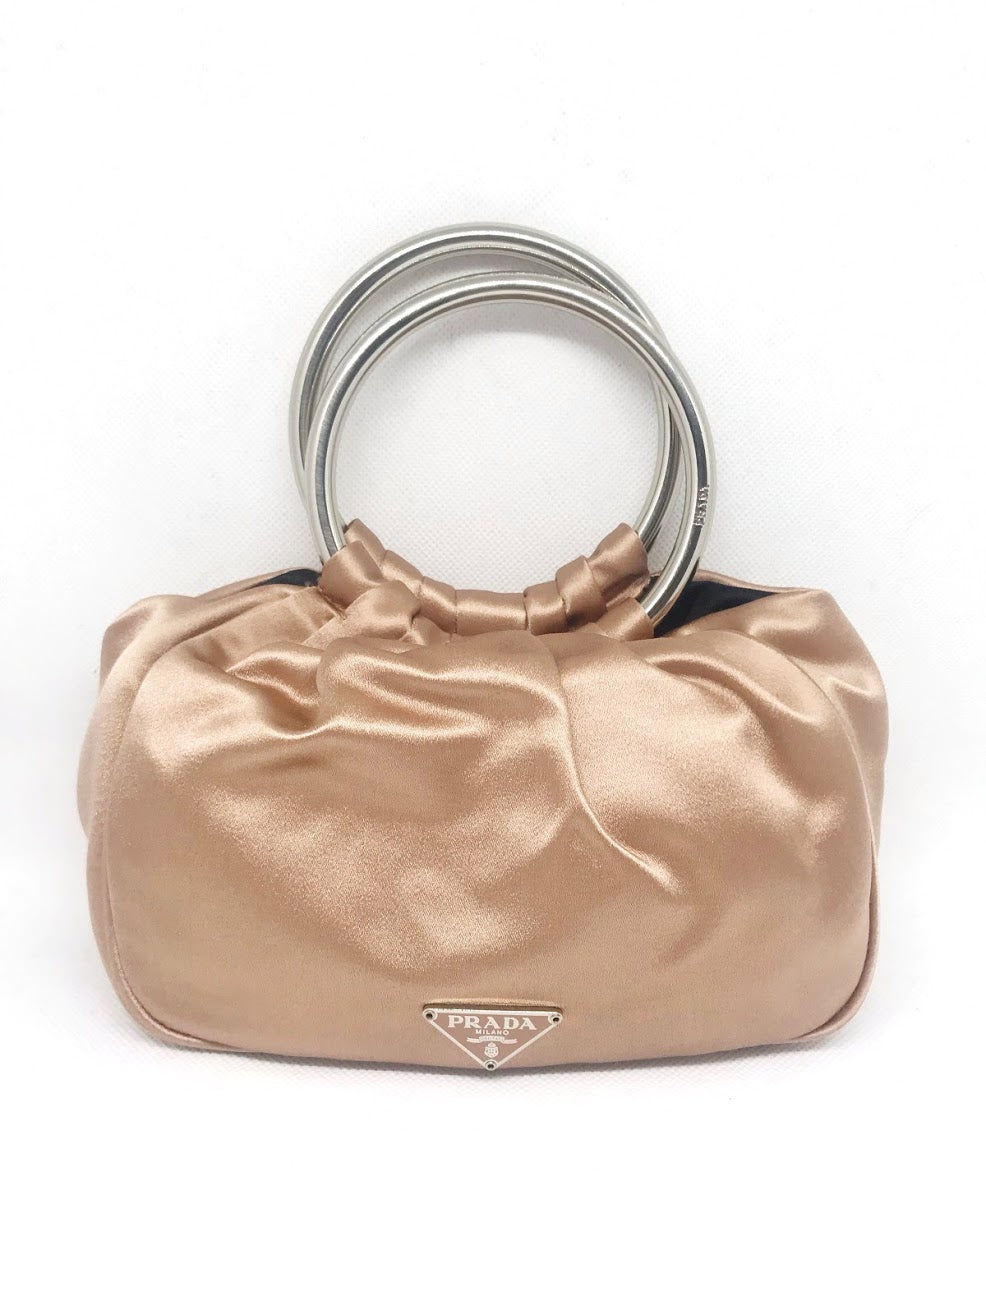 PRADA - PINK SATIN MINI BAG